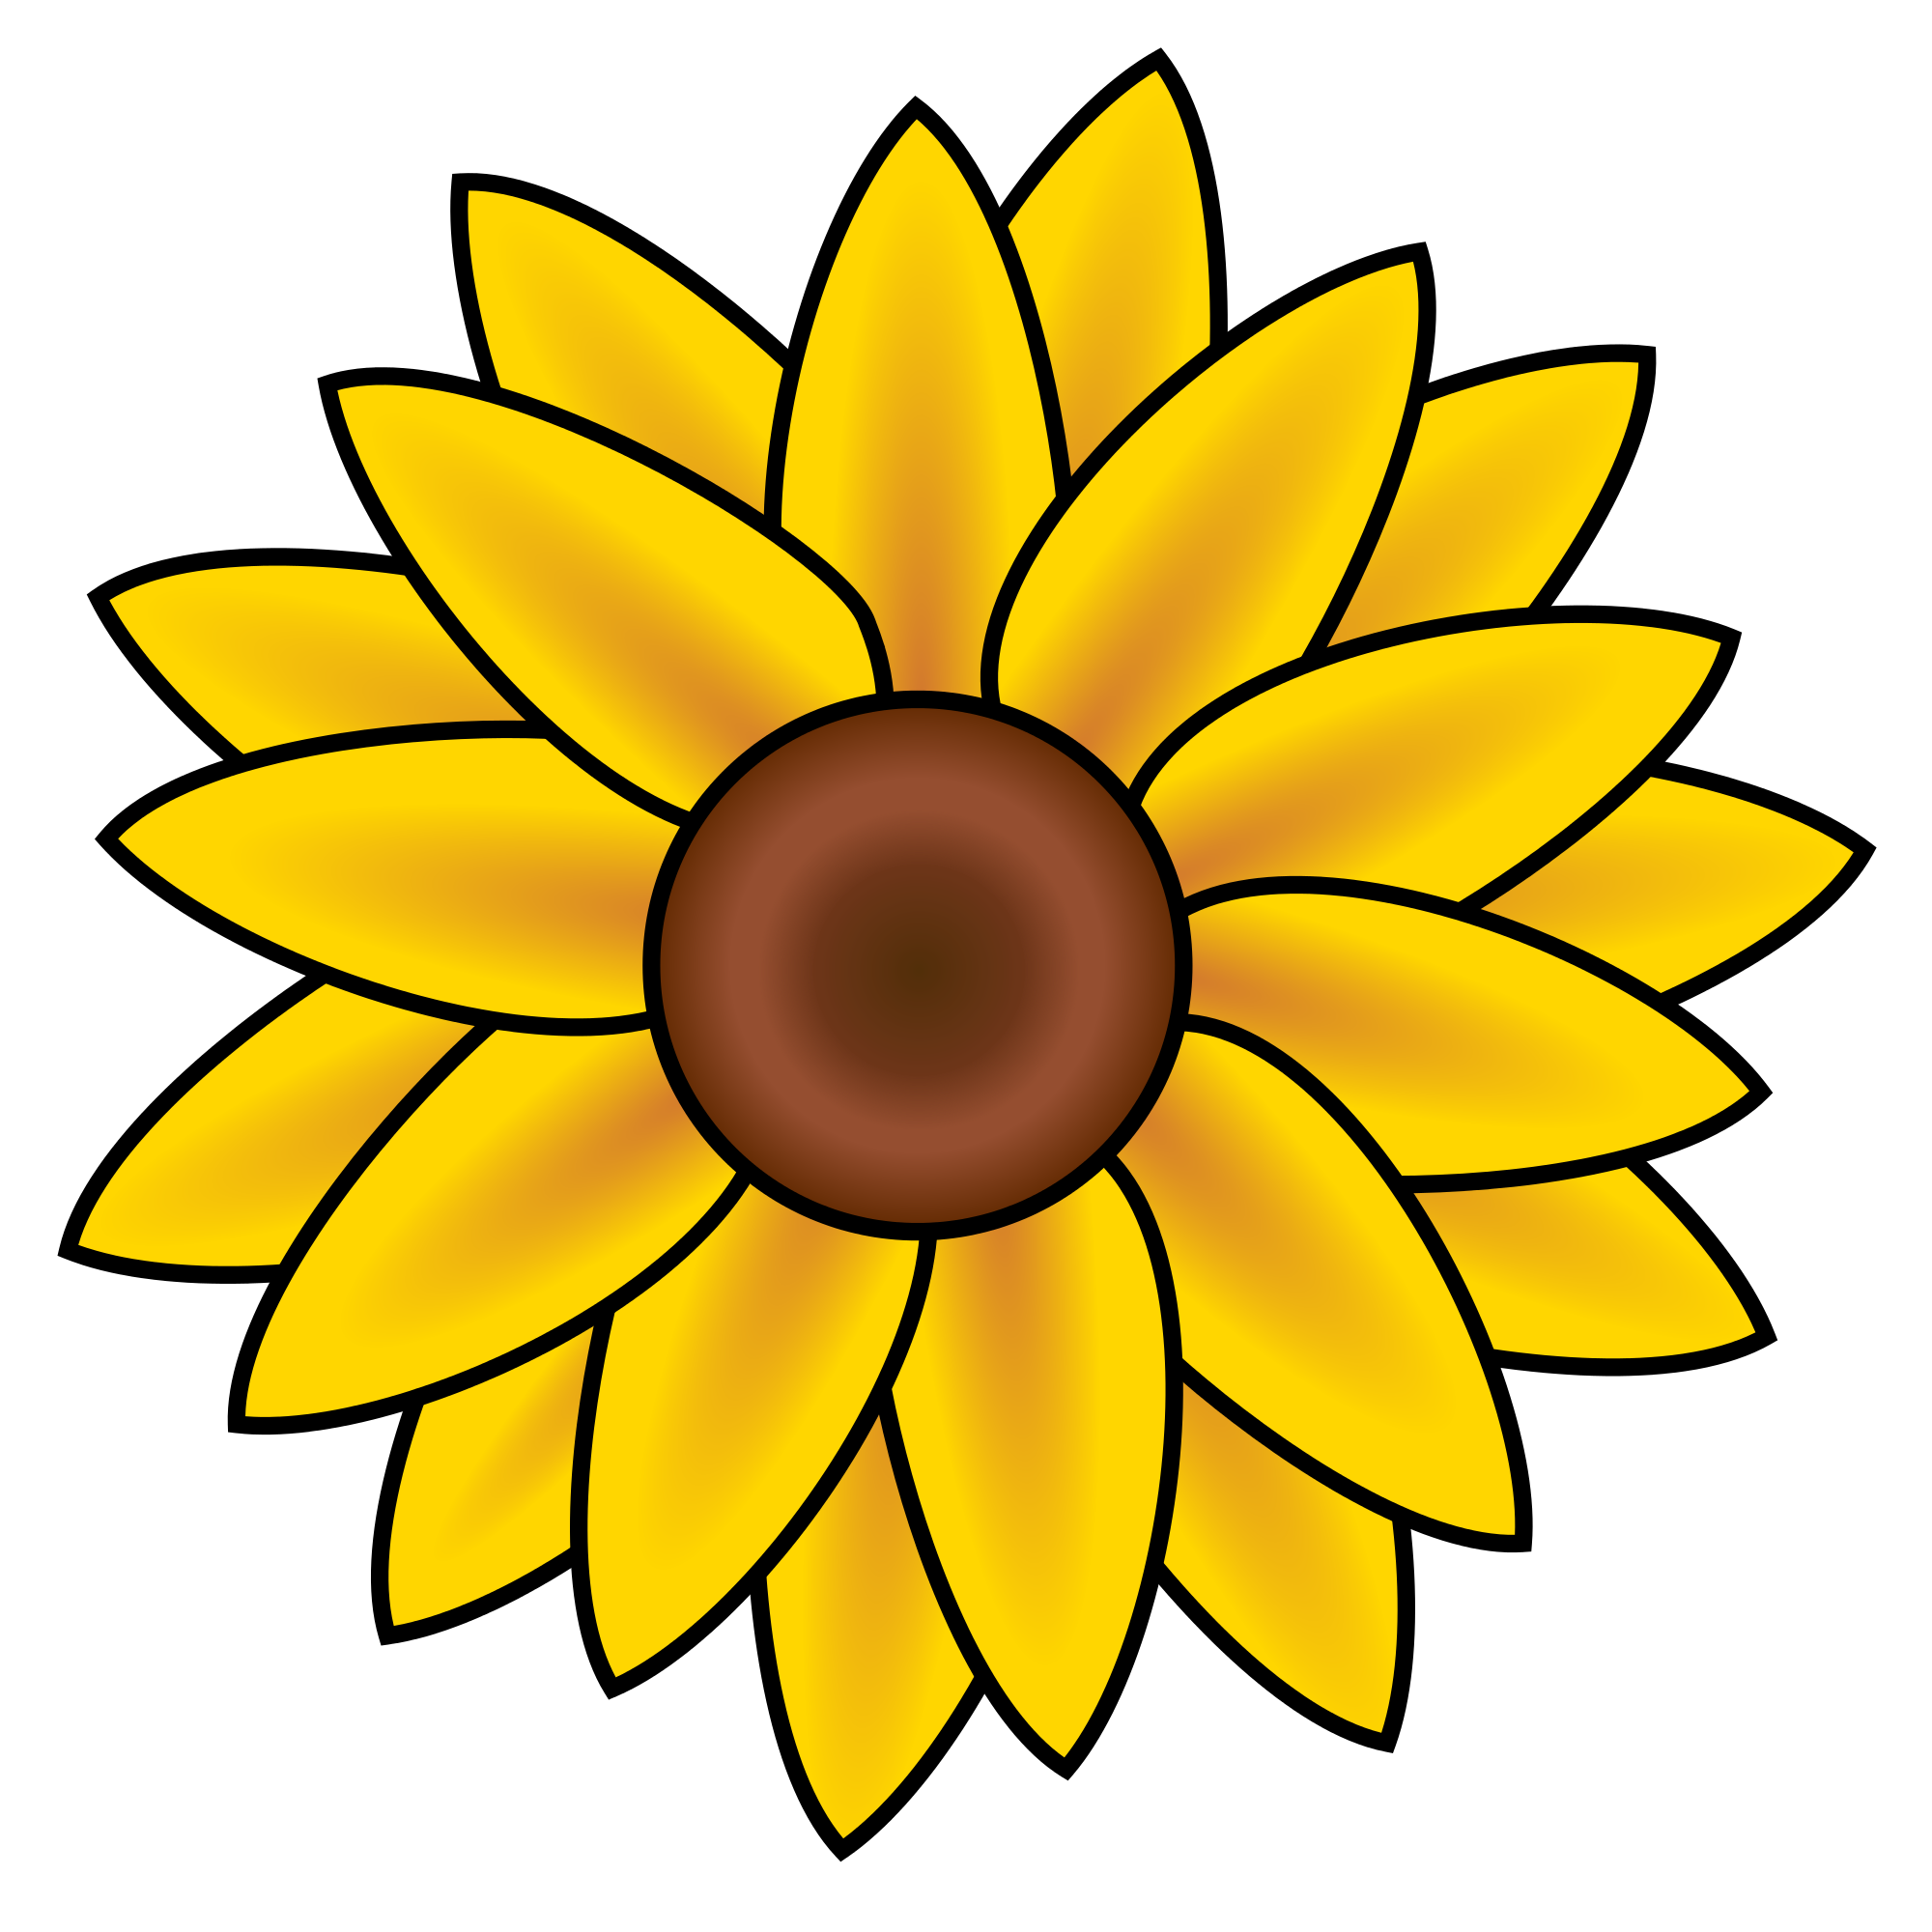 Drawing medium sunflower. Collection of free svg